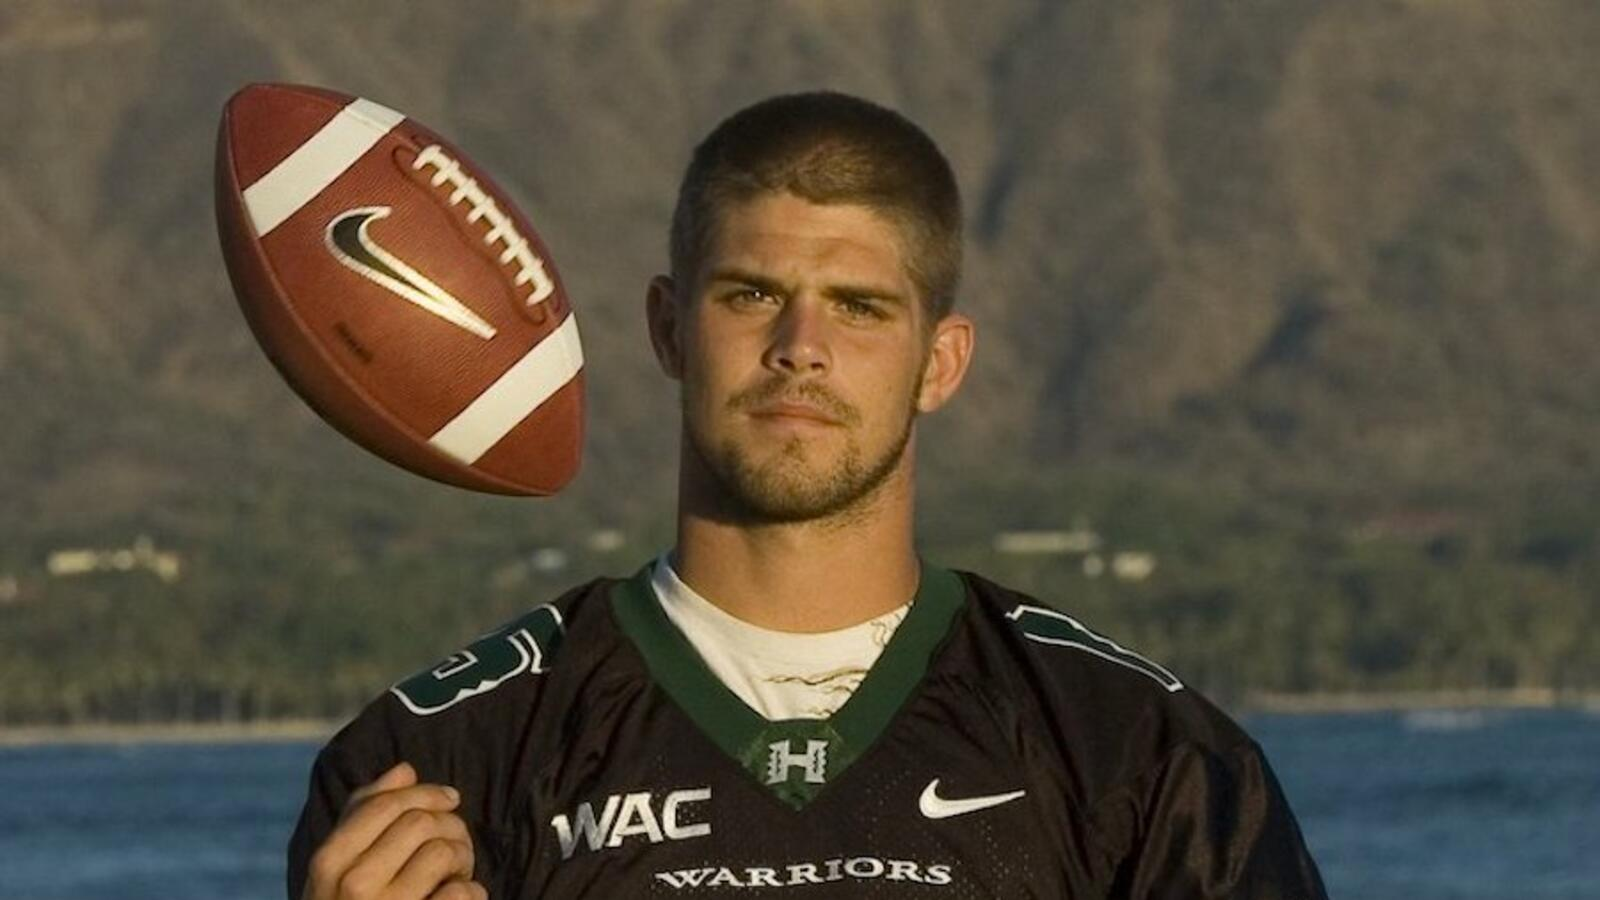 Record-Breaking Quarterback Colt Brennan's Cause Of Death Revealed